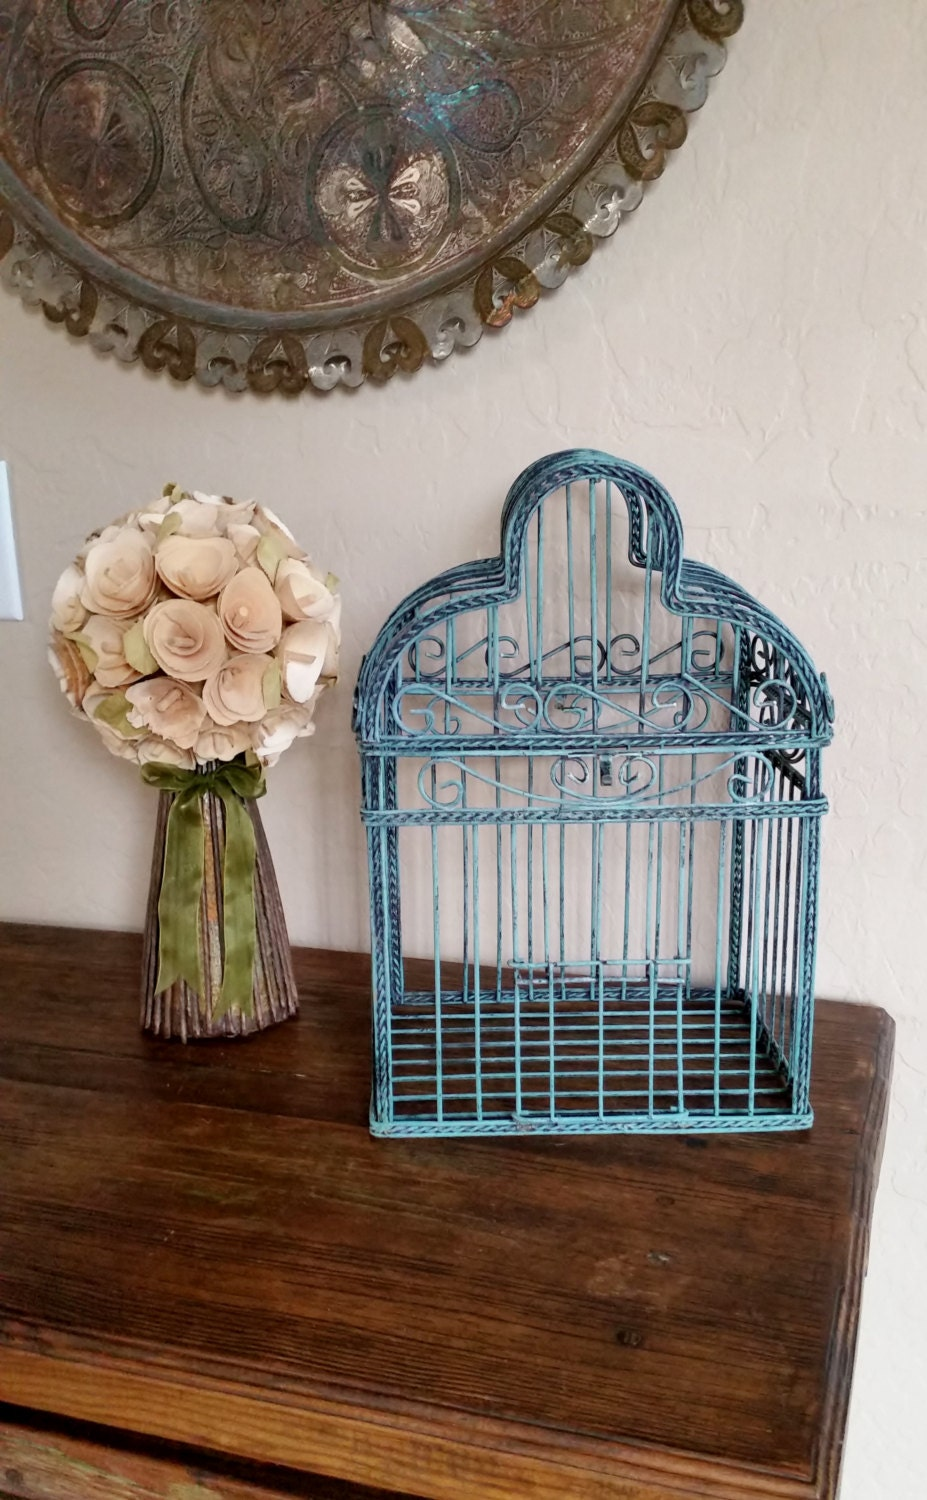 The Best 28 Images Of Decorative Small Bird Cages